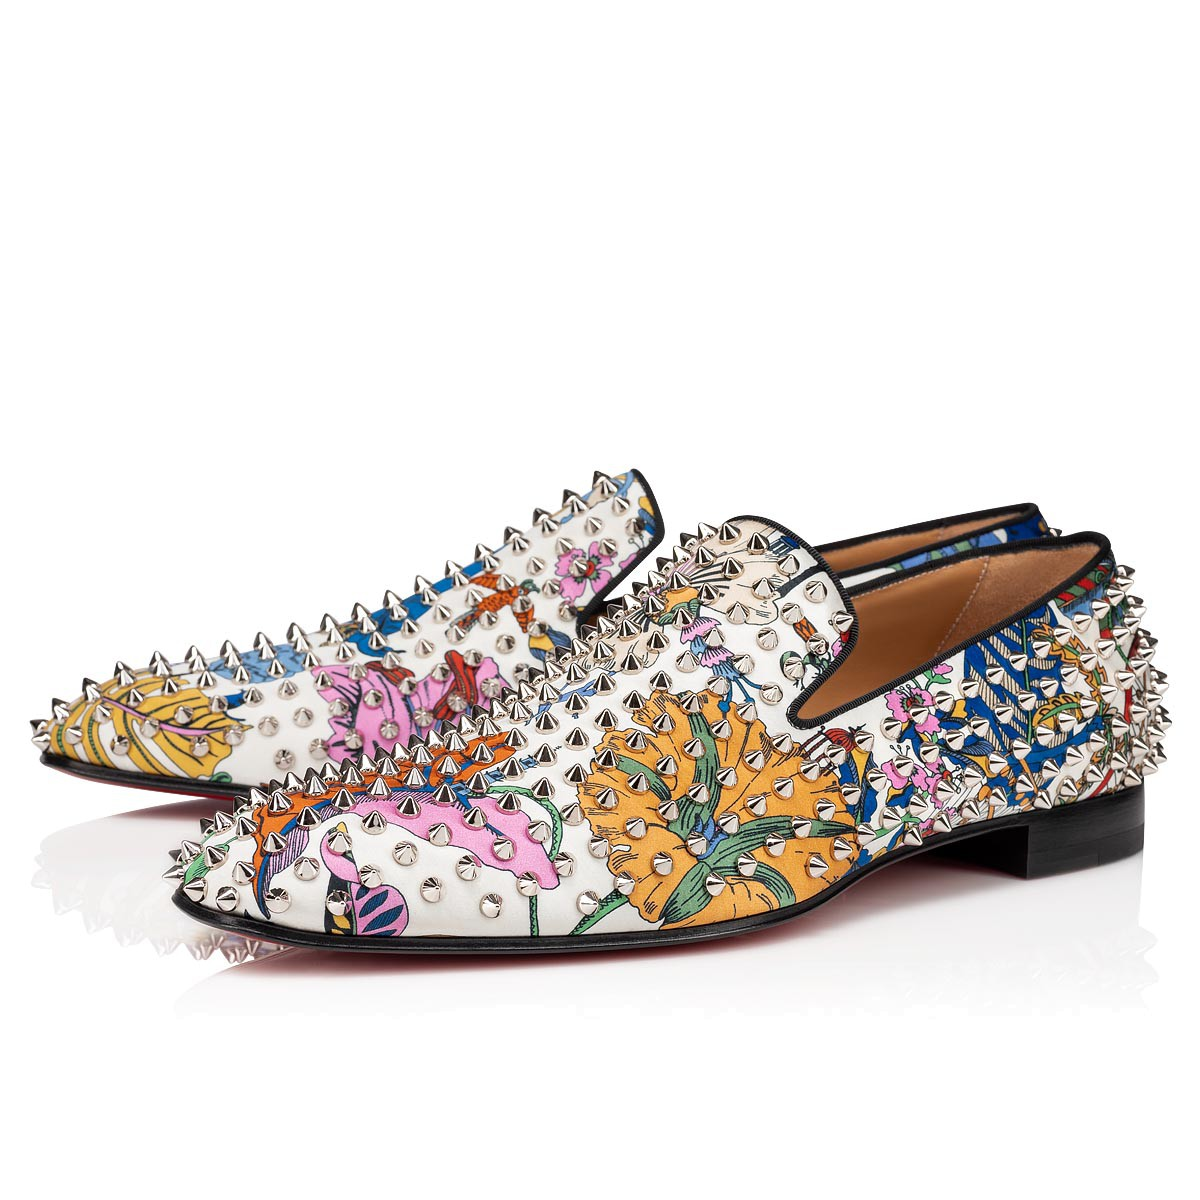 Shoes - Dandelion Spikes Flat - Christian Louboutin